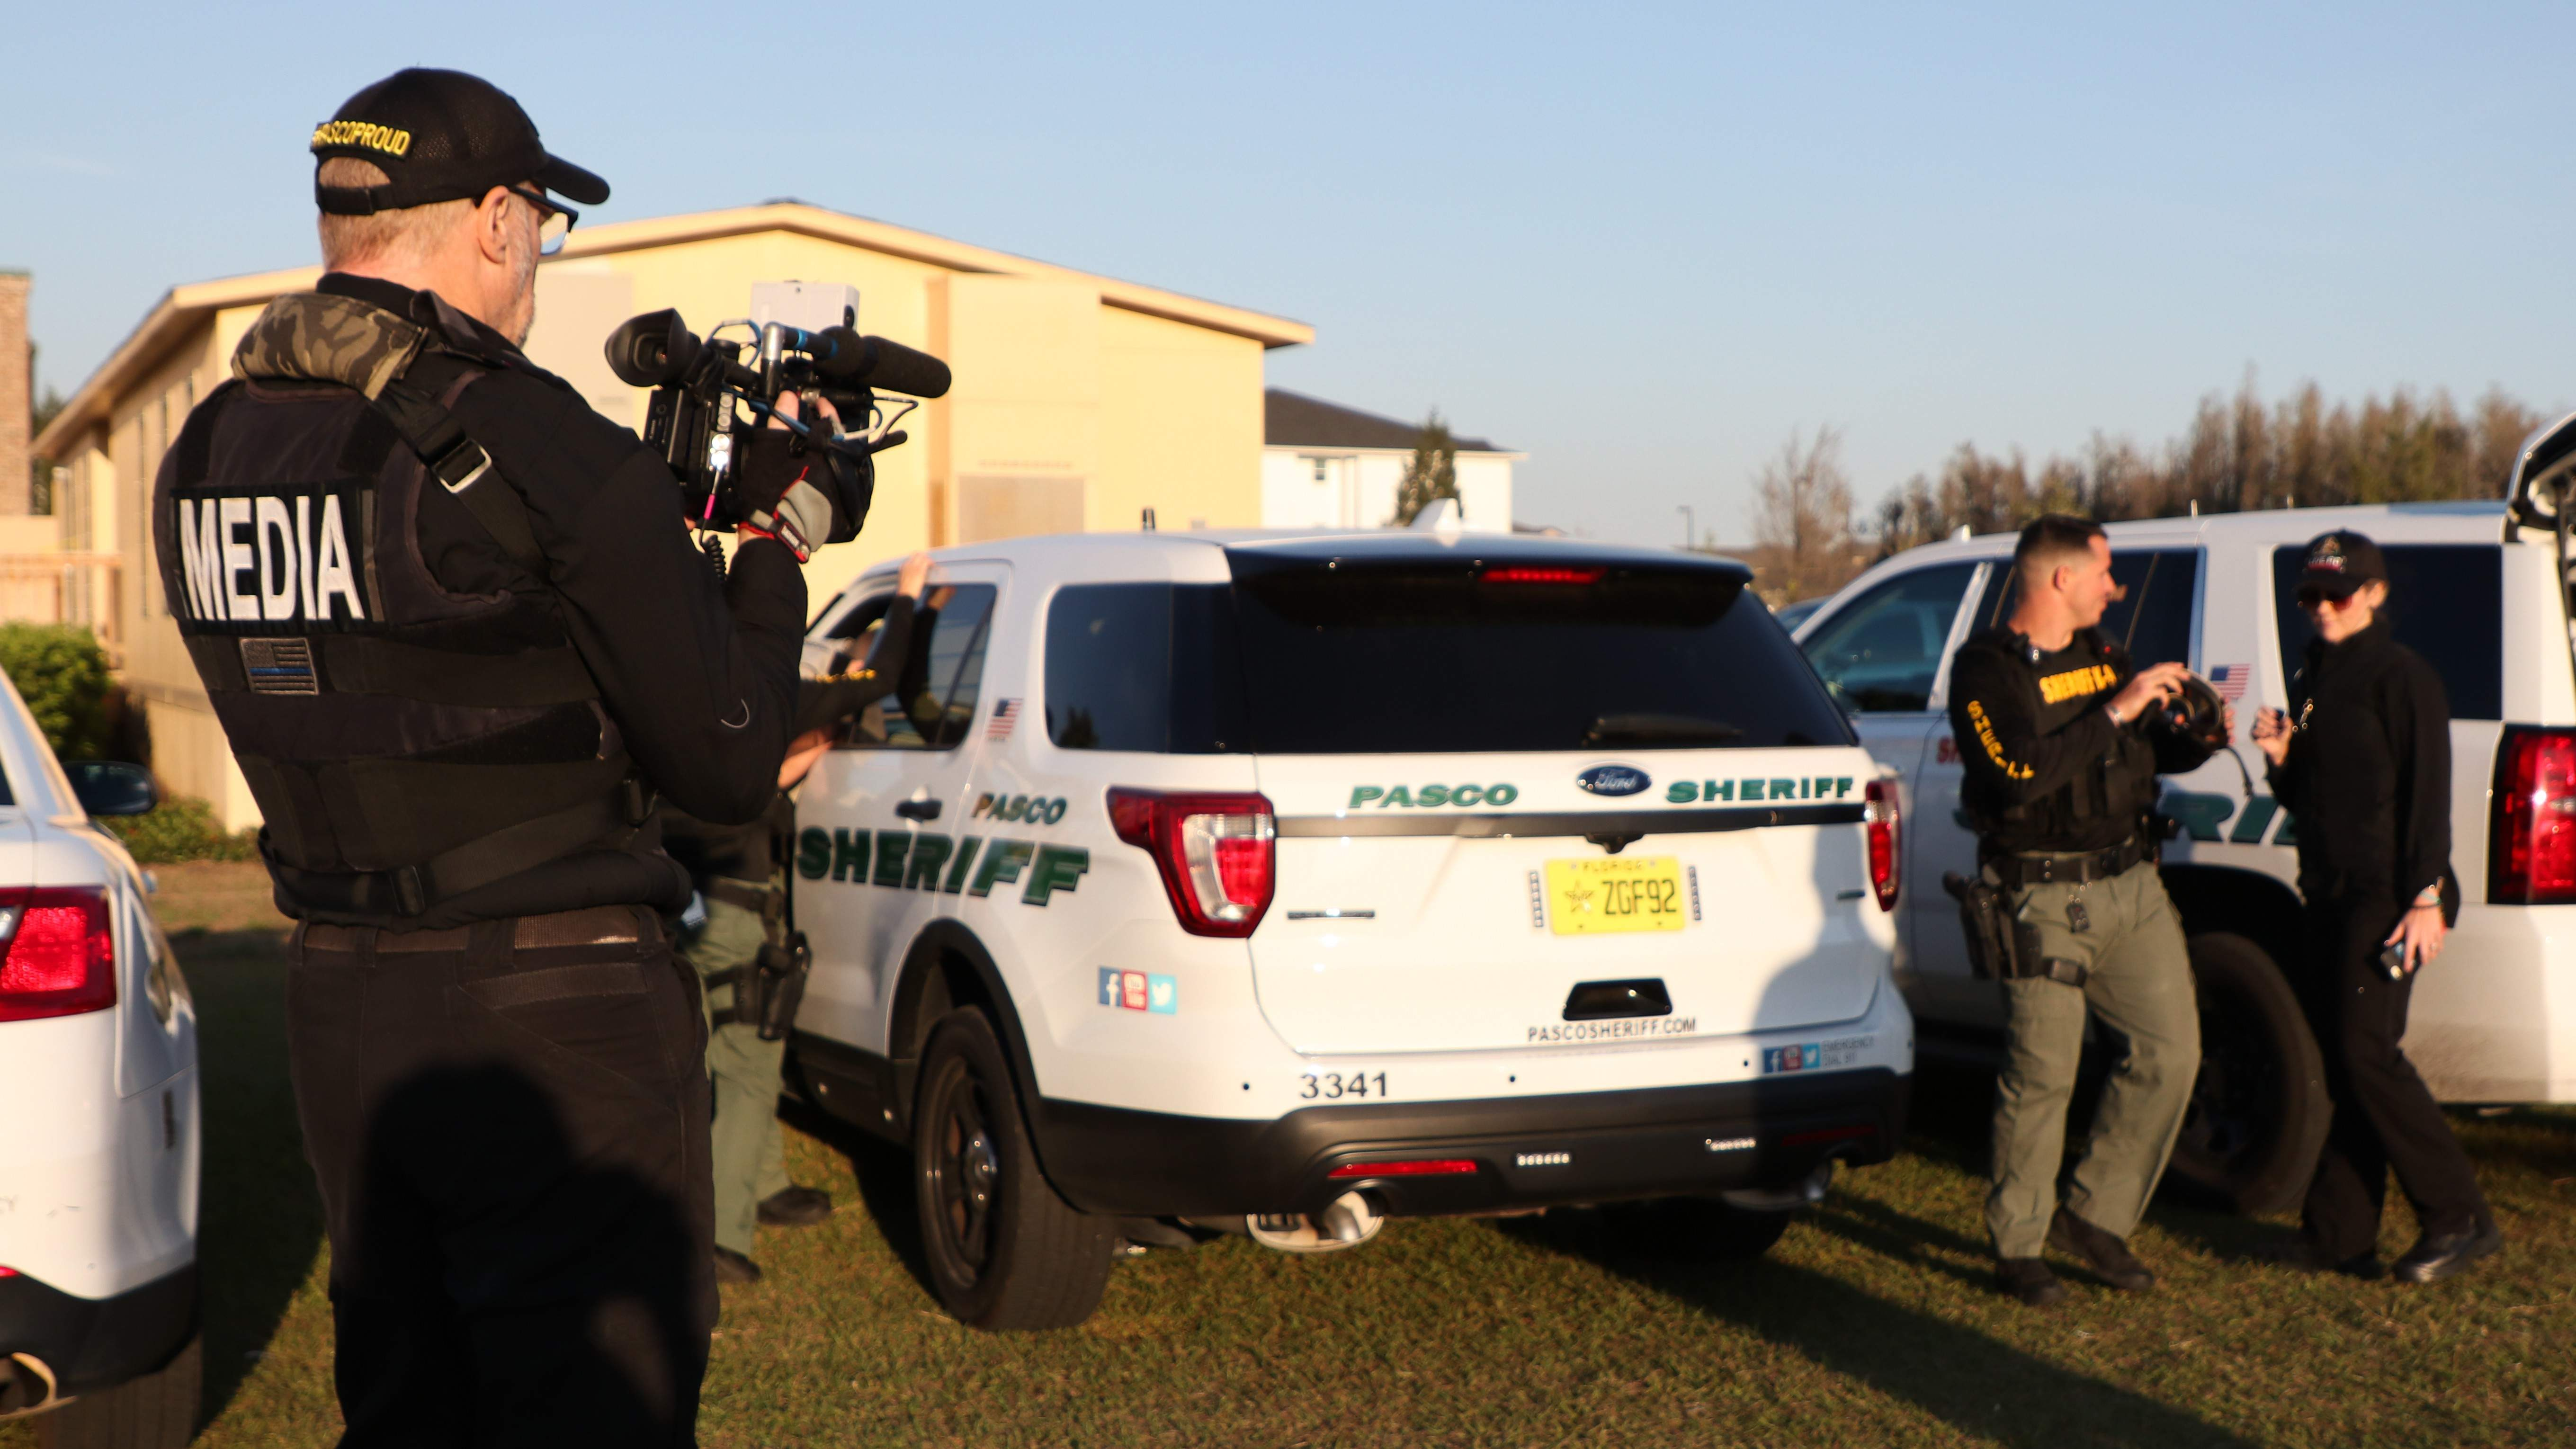 Pasco deputies step away from their feature role on A&E's